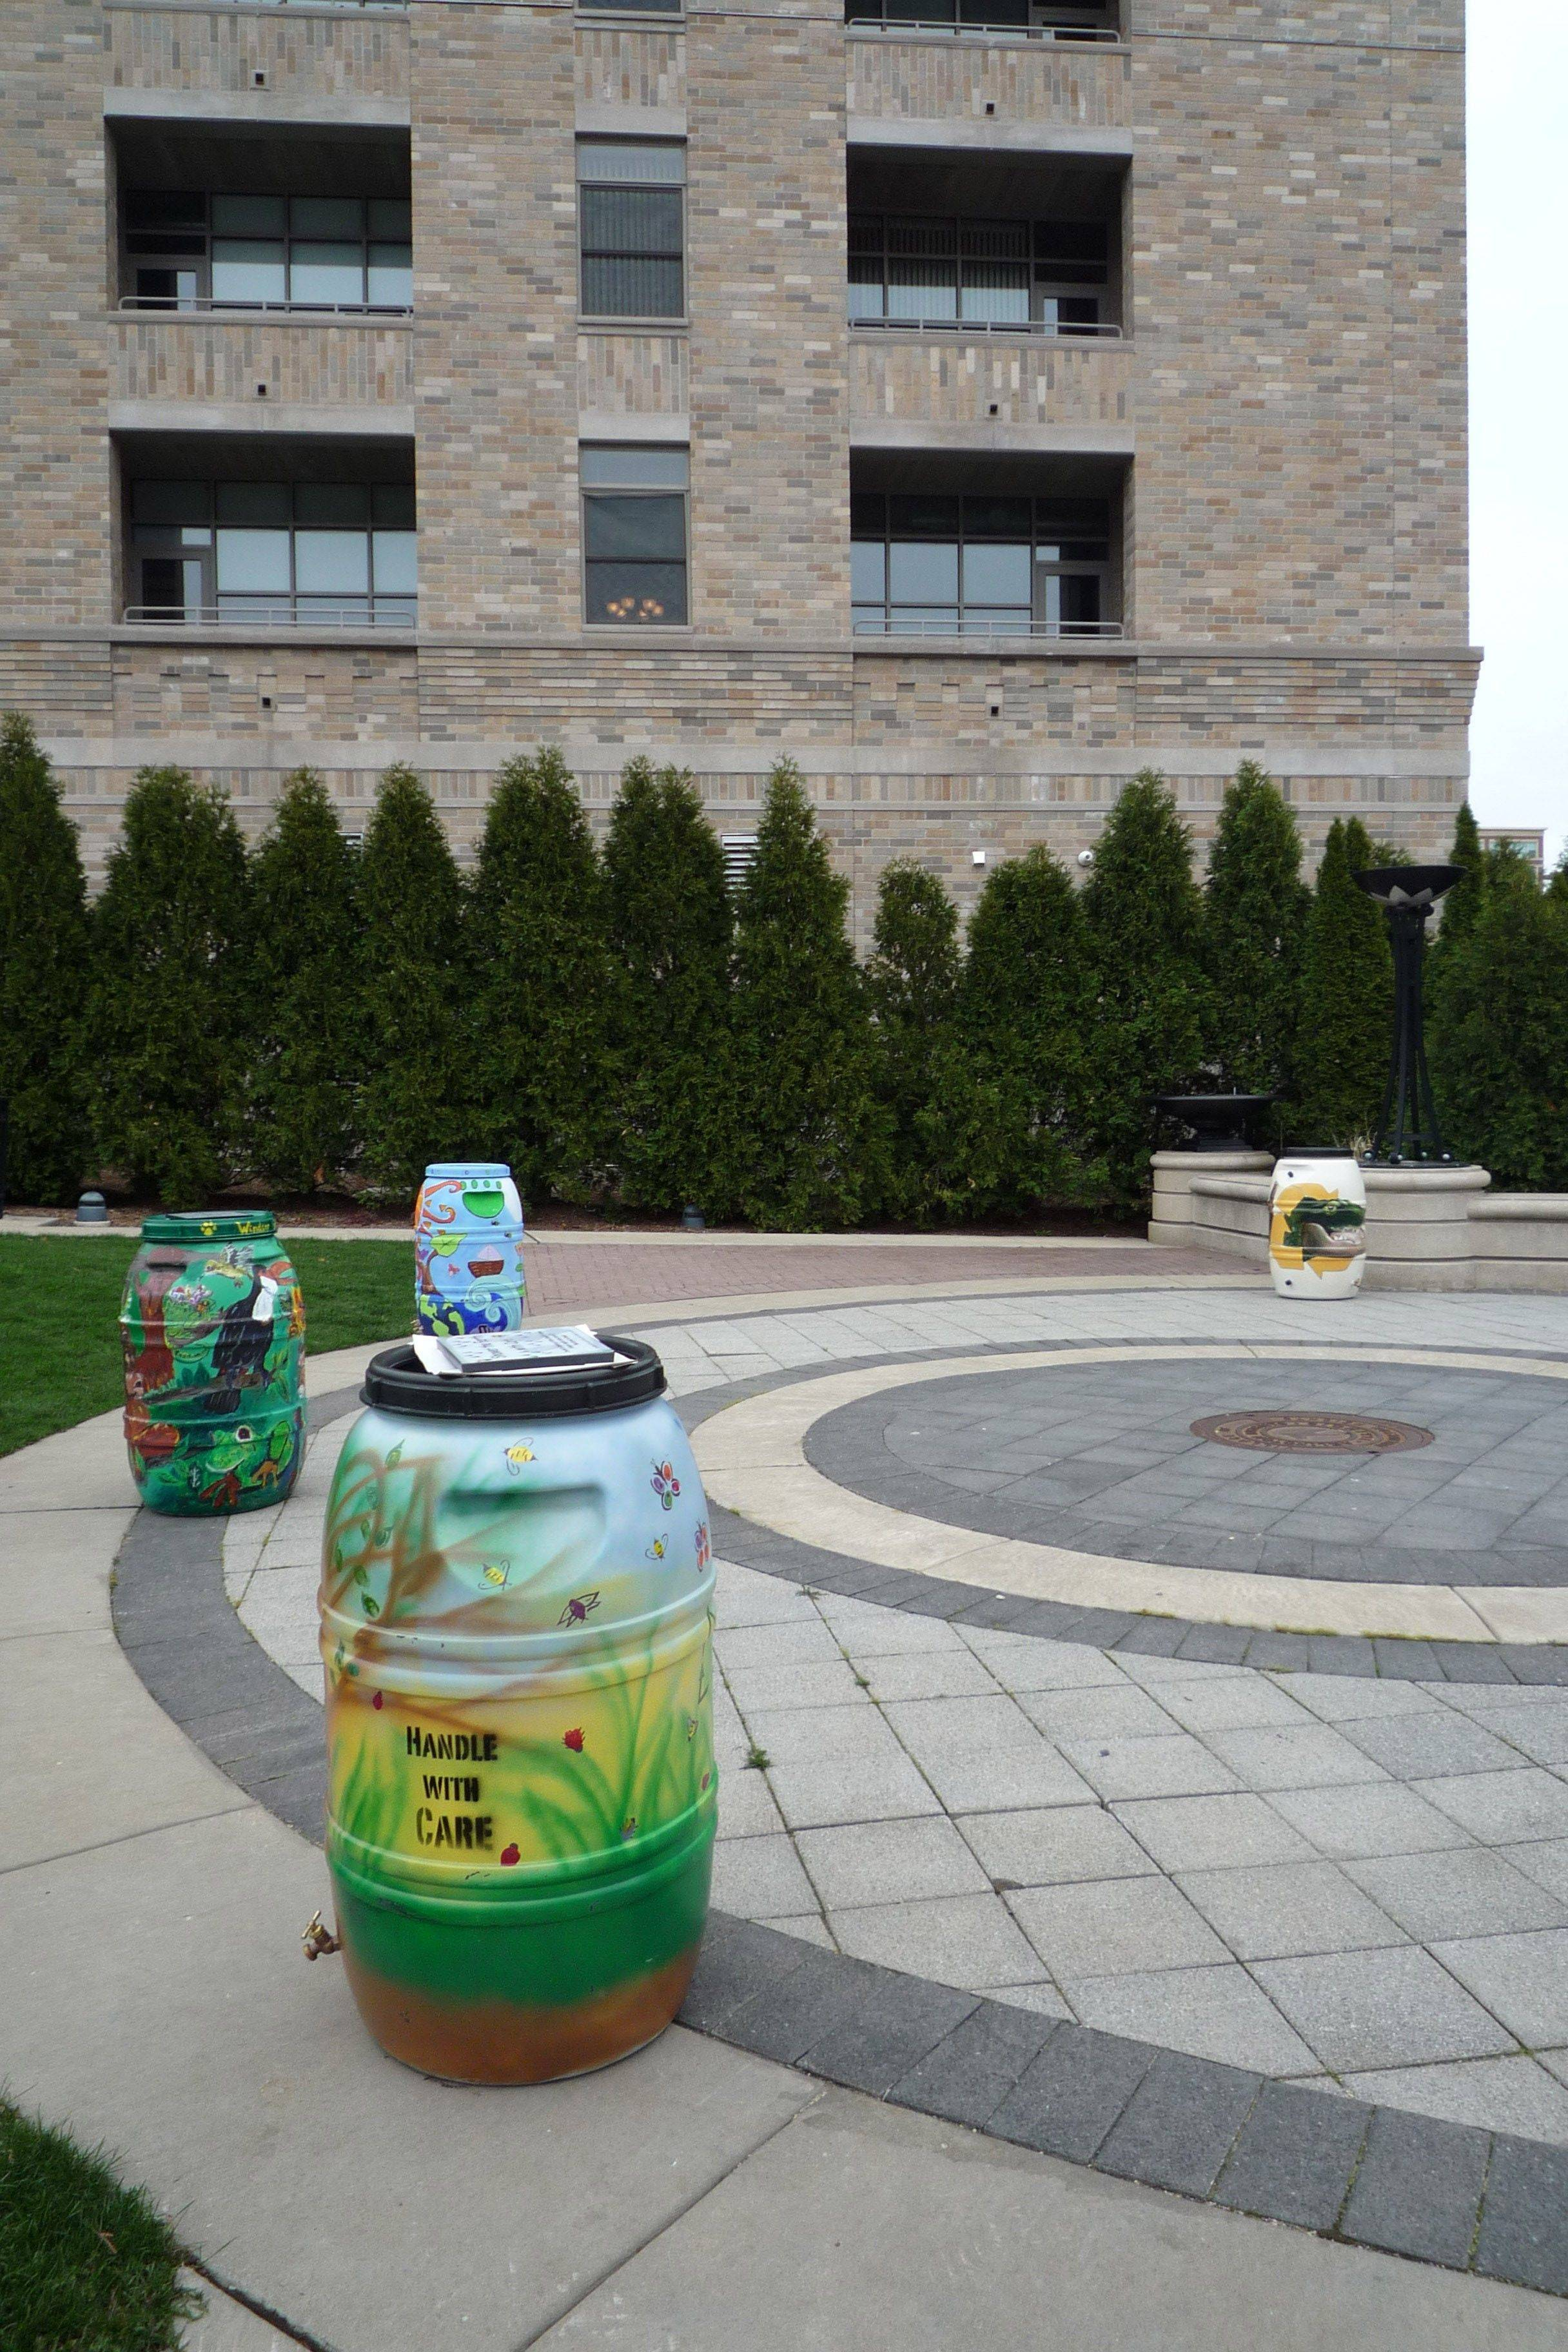 Rain Barrels on Parade were part of Earth Day awareness in downtown Arlington Heights. The barrels were created by students in Arlington Heights Elementary District 25 ecology clubs.